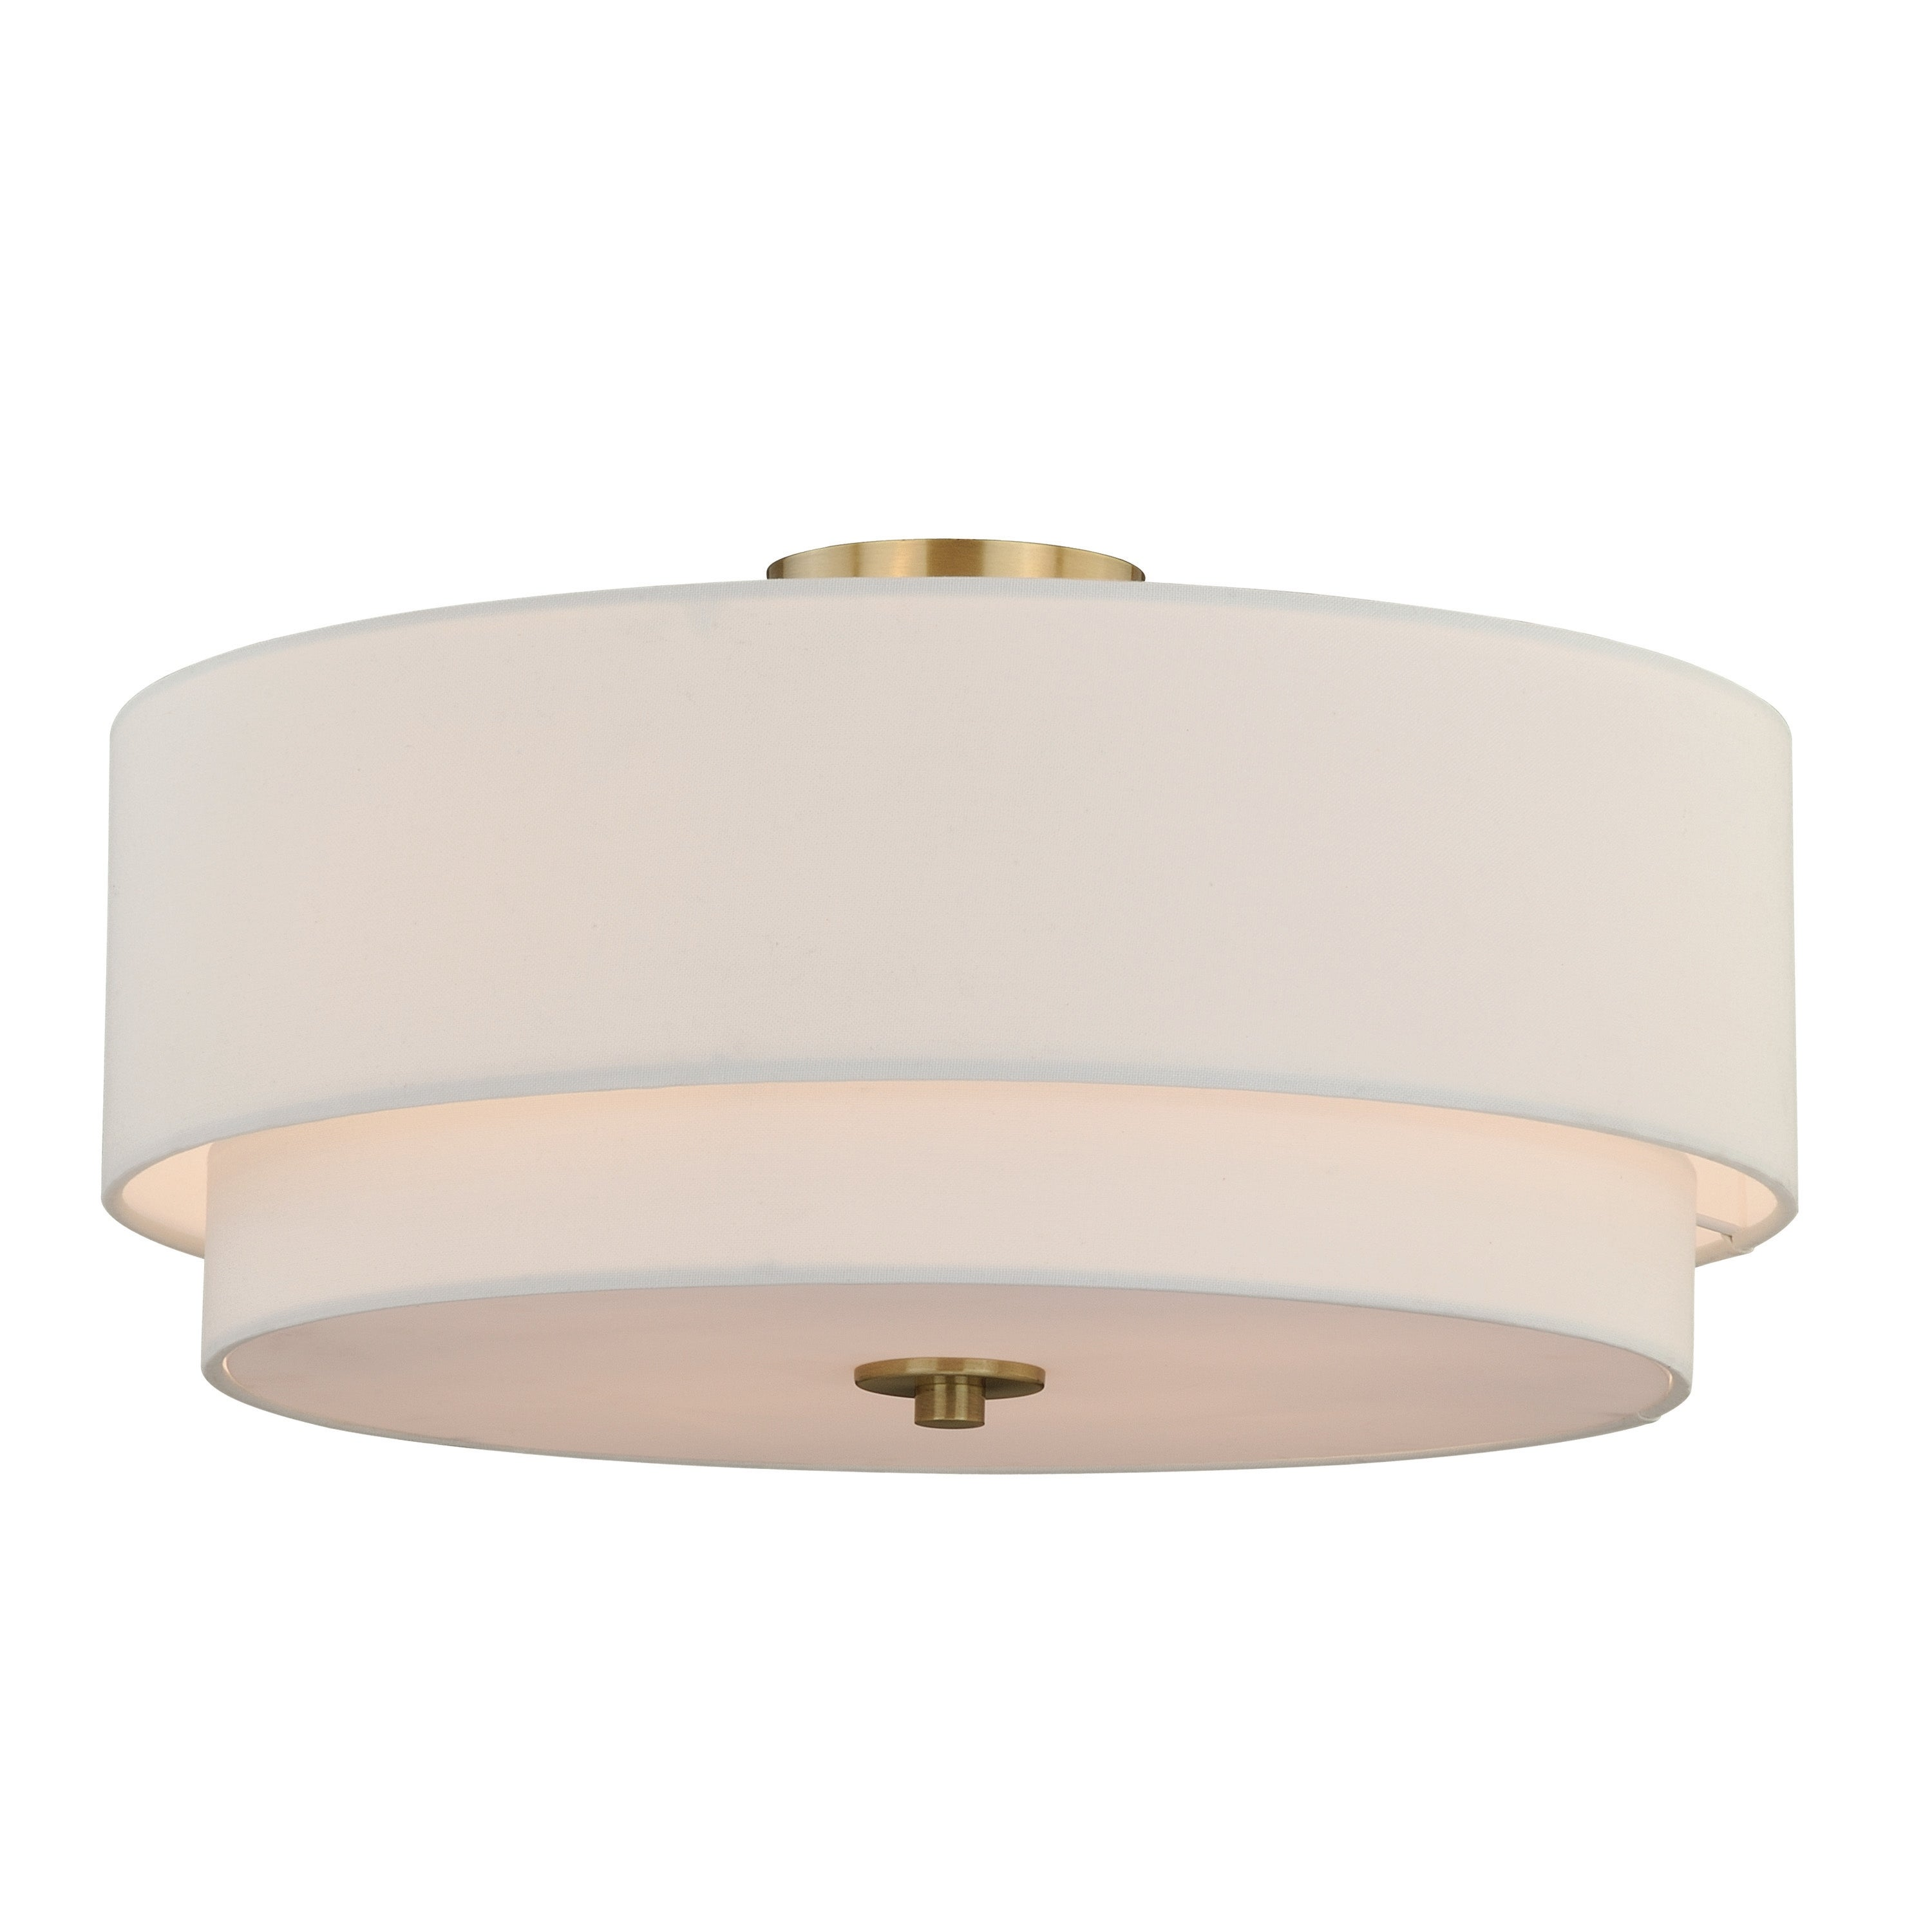 Image of: Shop Black Friday Deals On Burnaby 20 5 In W Brass Mid Century Modern Drum Semi Flush Mount Ceiling Light White Linen 20 5 In W X 8 In H X 20 5 In D Overstock 20985936